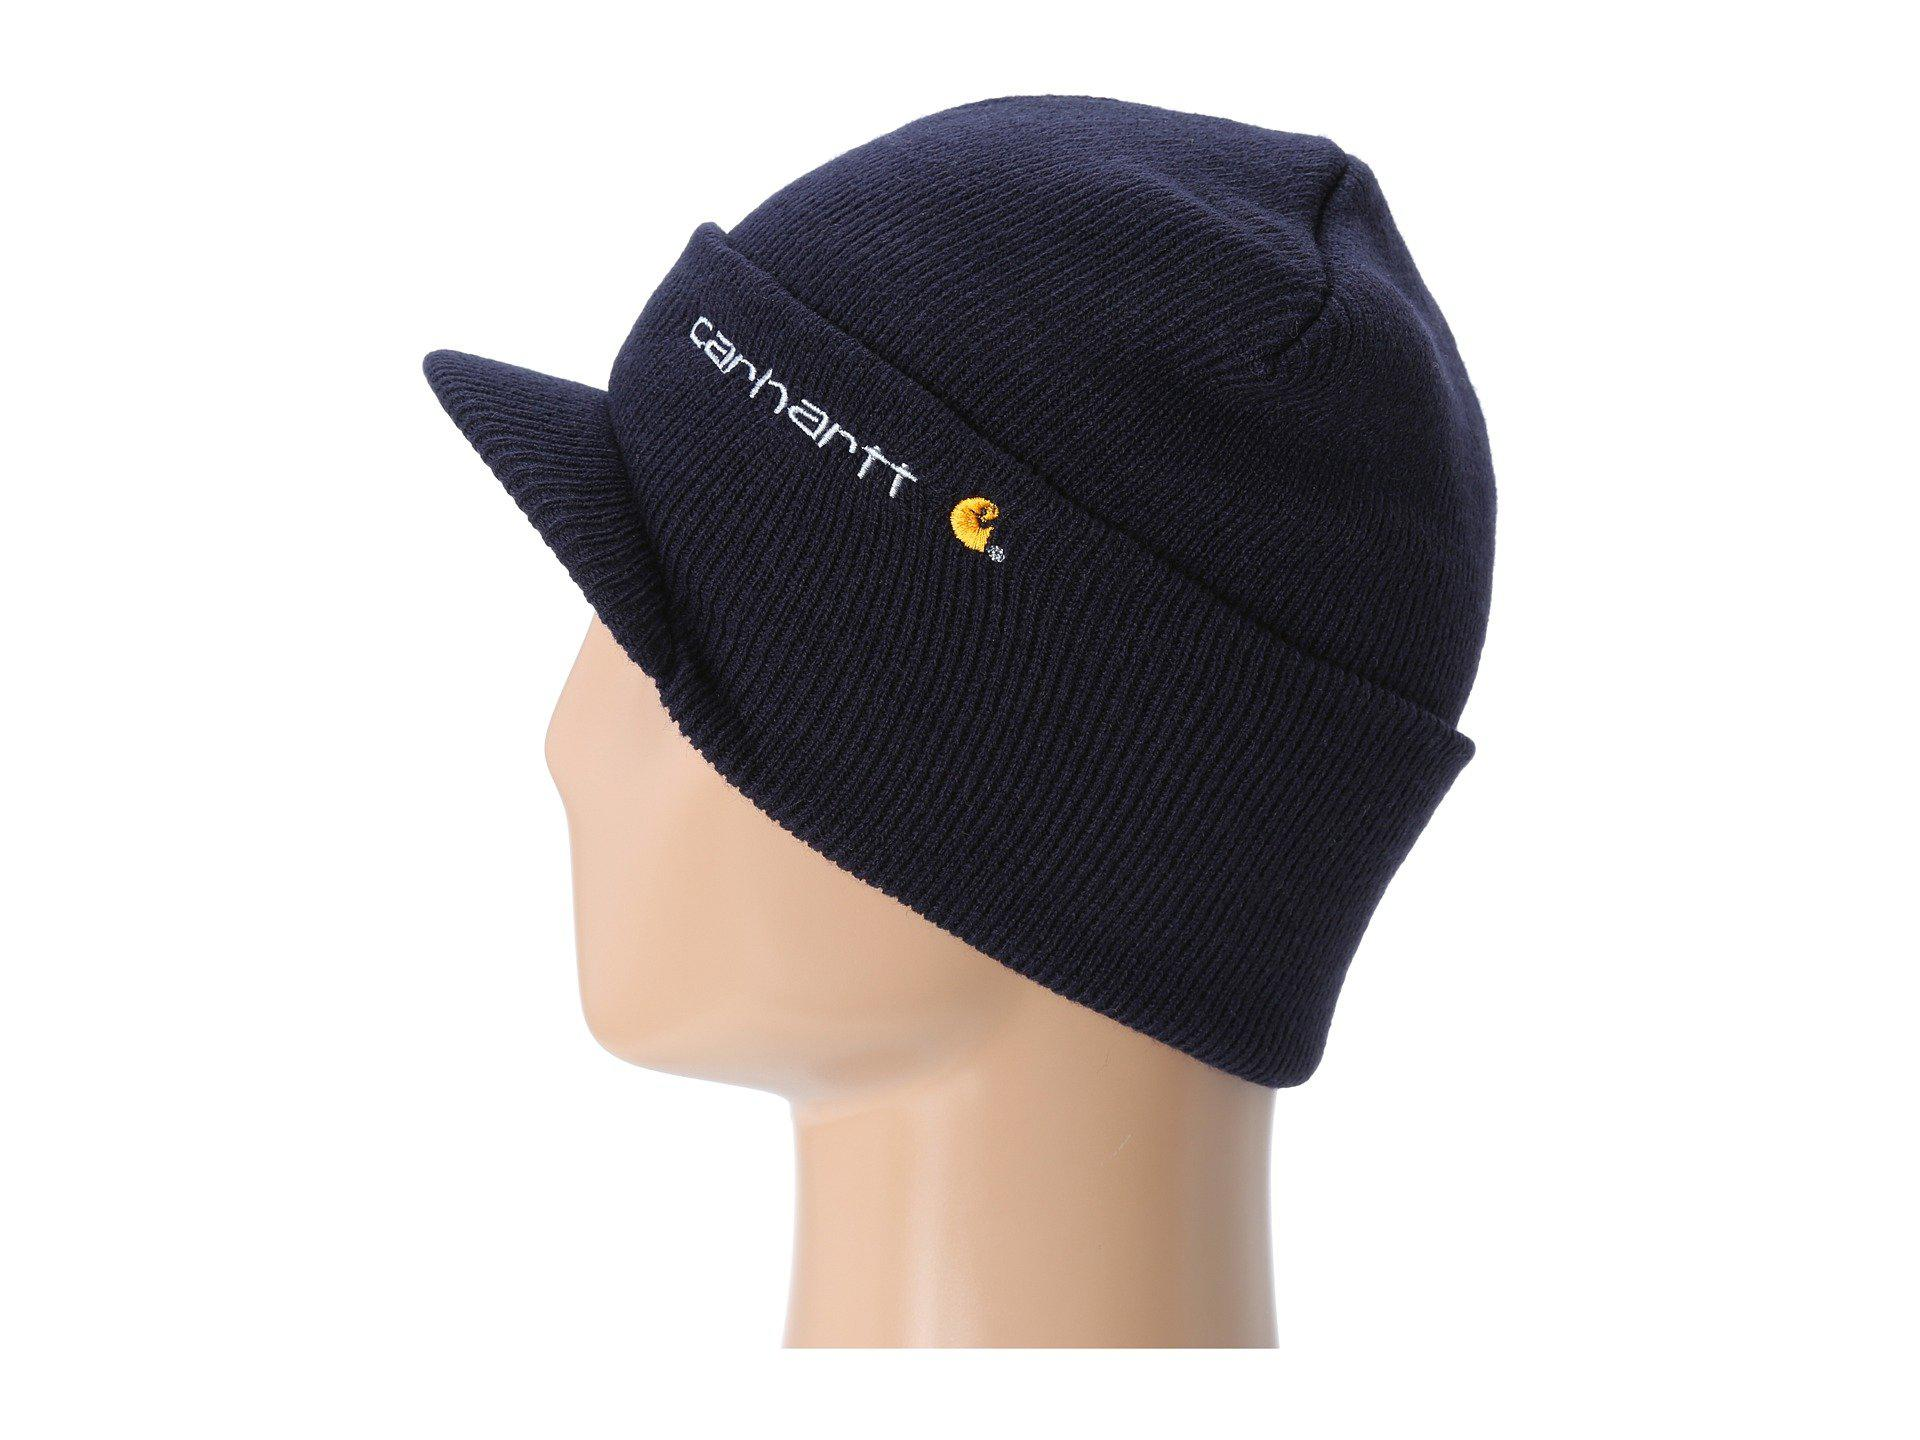 Lyst - Carhartt Knit Hat With Visor in Blue for Men a033e4ddcf0